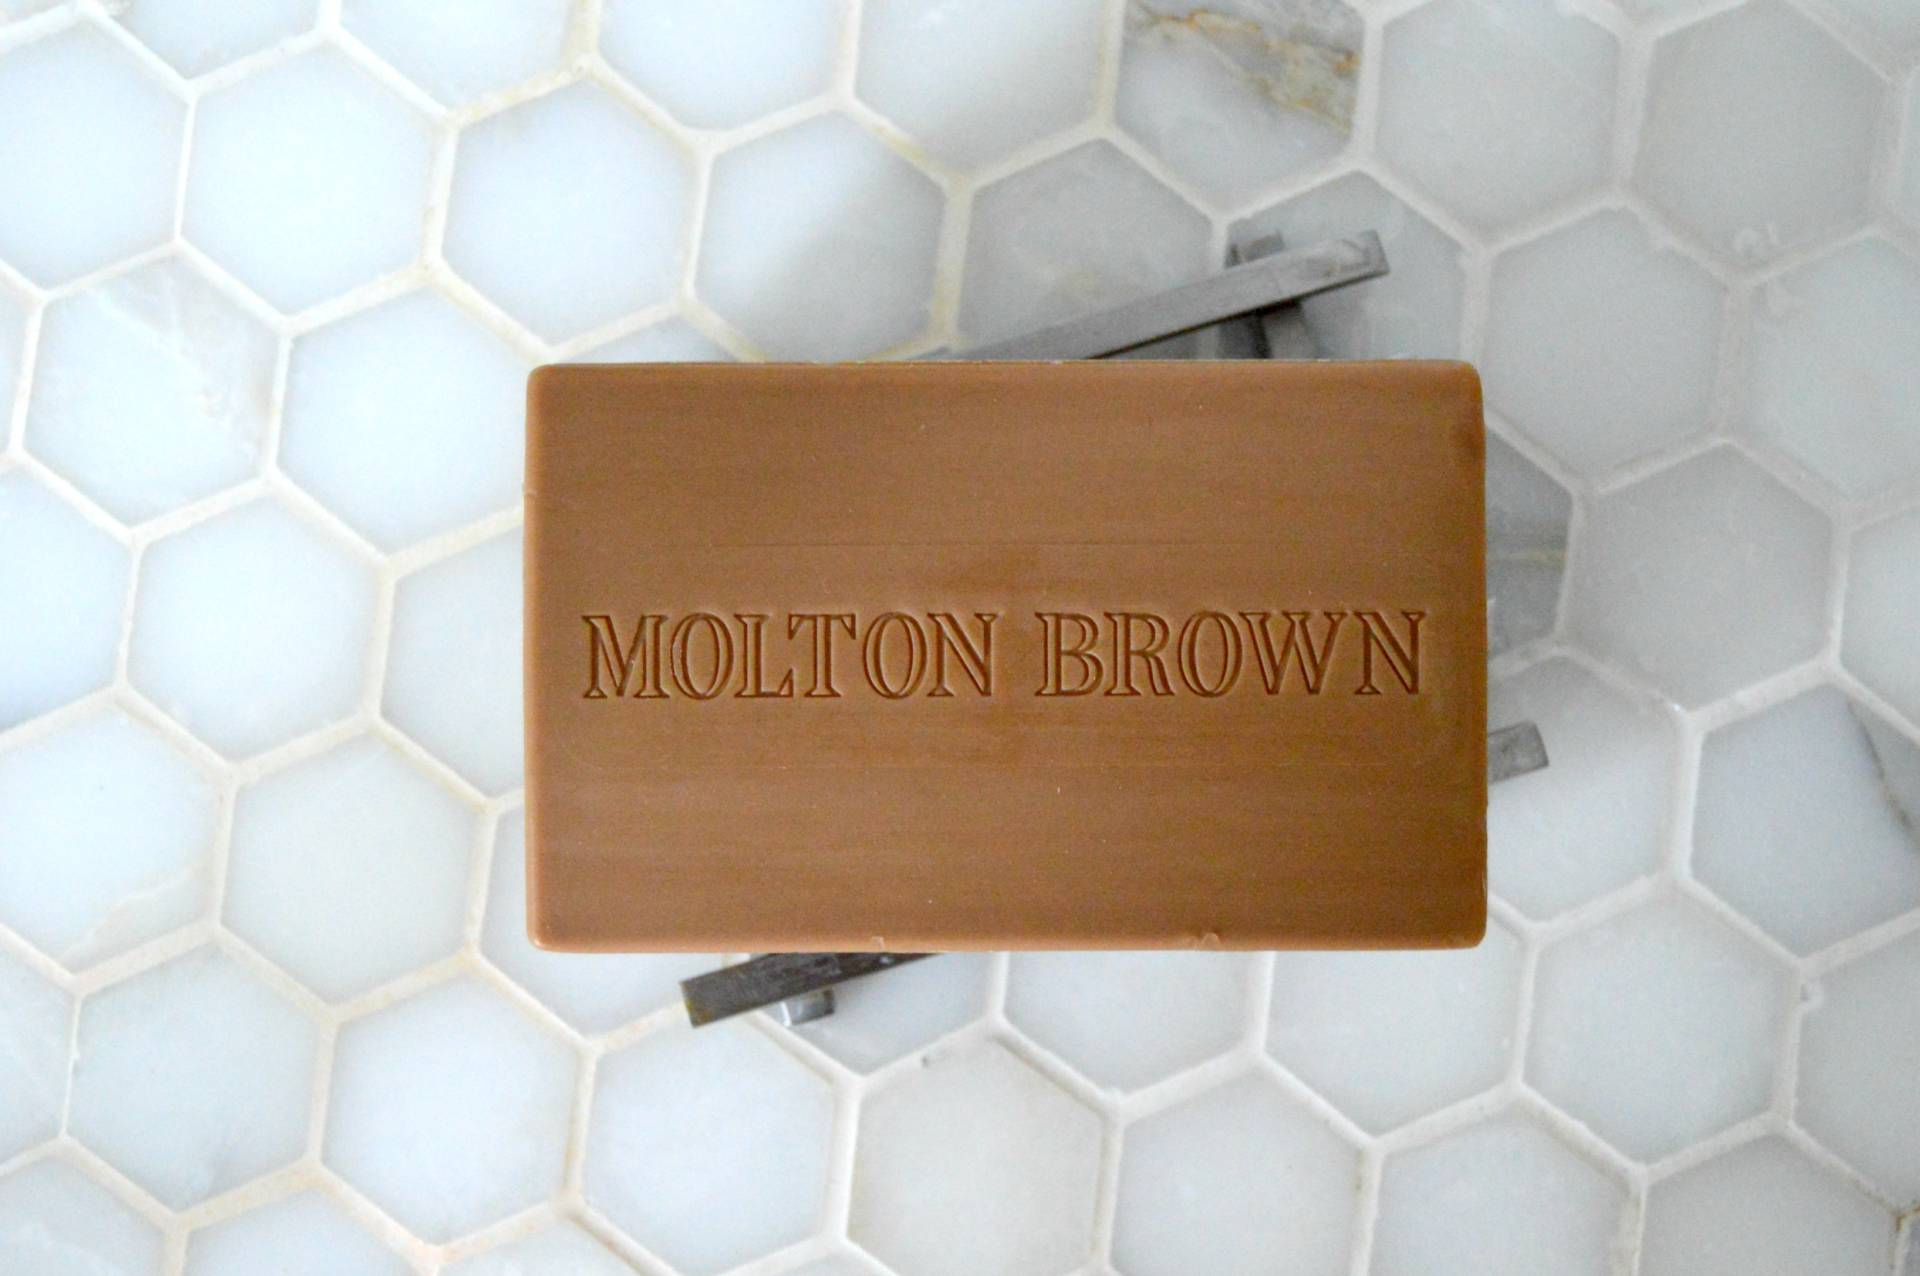 molton brown ultrabar soap bar review inhautepursuit neiman marcus national mens grooming day